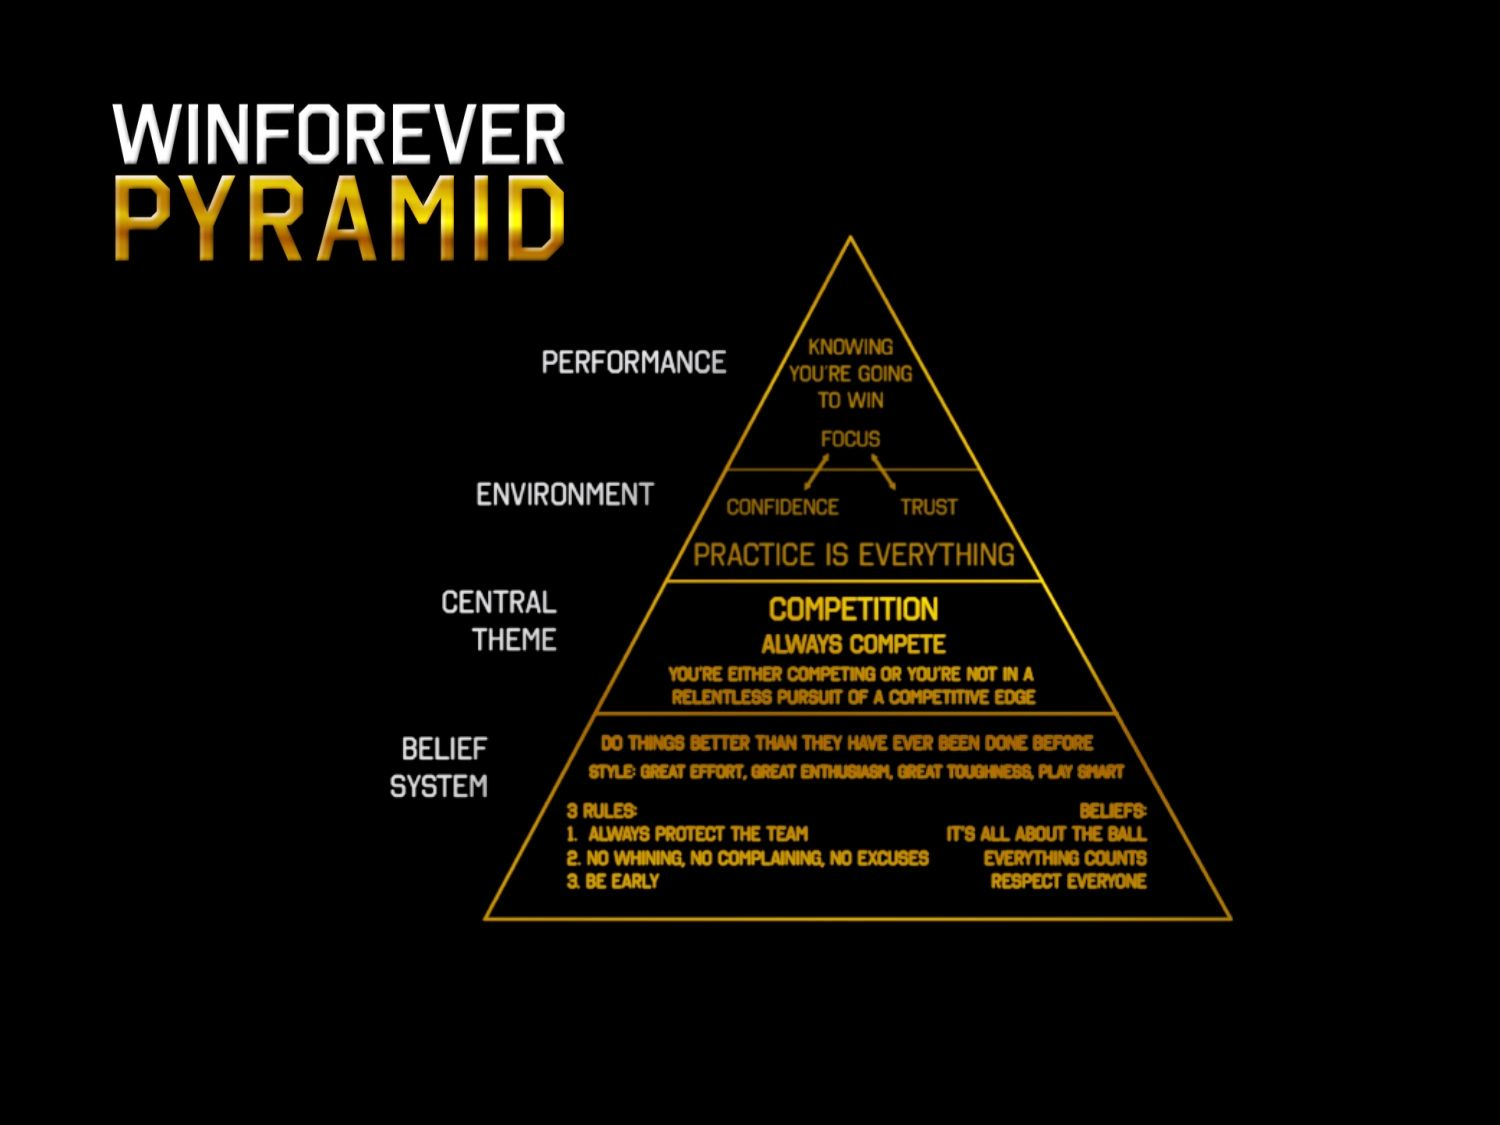 Pete Carroll's Success Pyramid. Can Be Modified To Help